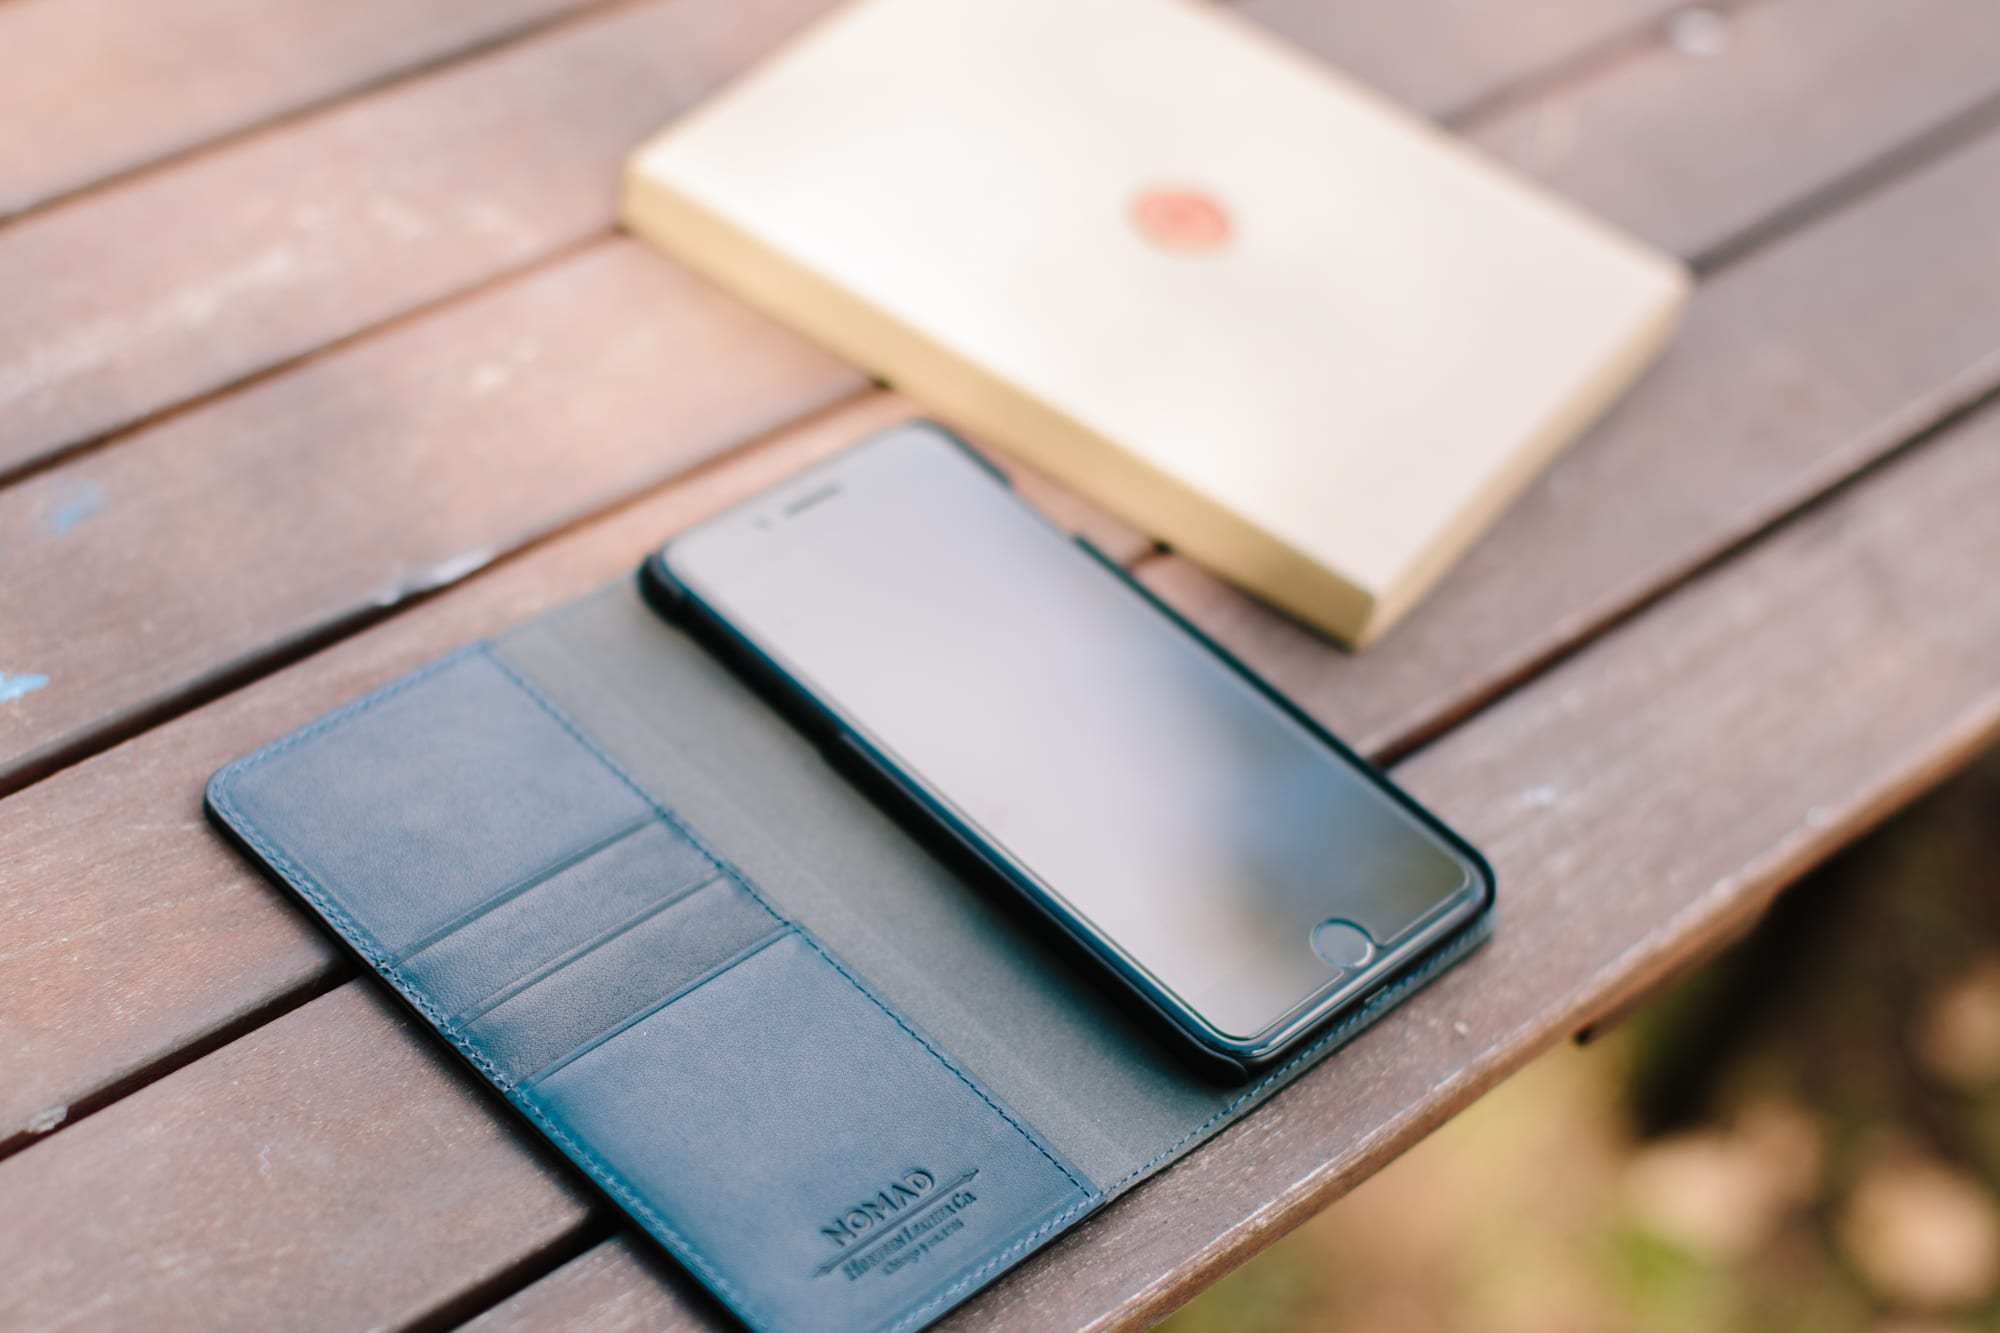 half off ef0b5 eff35 REVIEW: The Nomad Leather Folio Case For iPhone 7 Plus